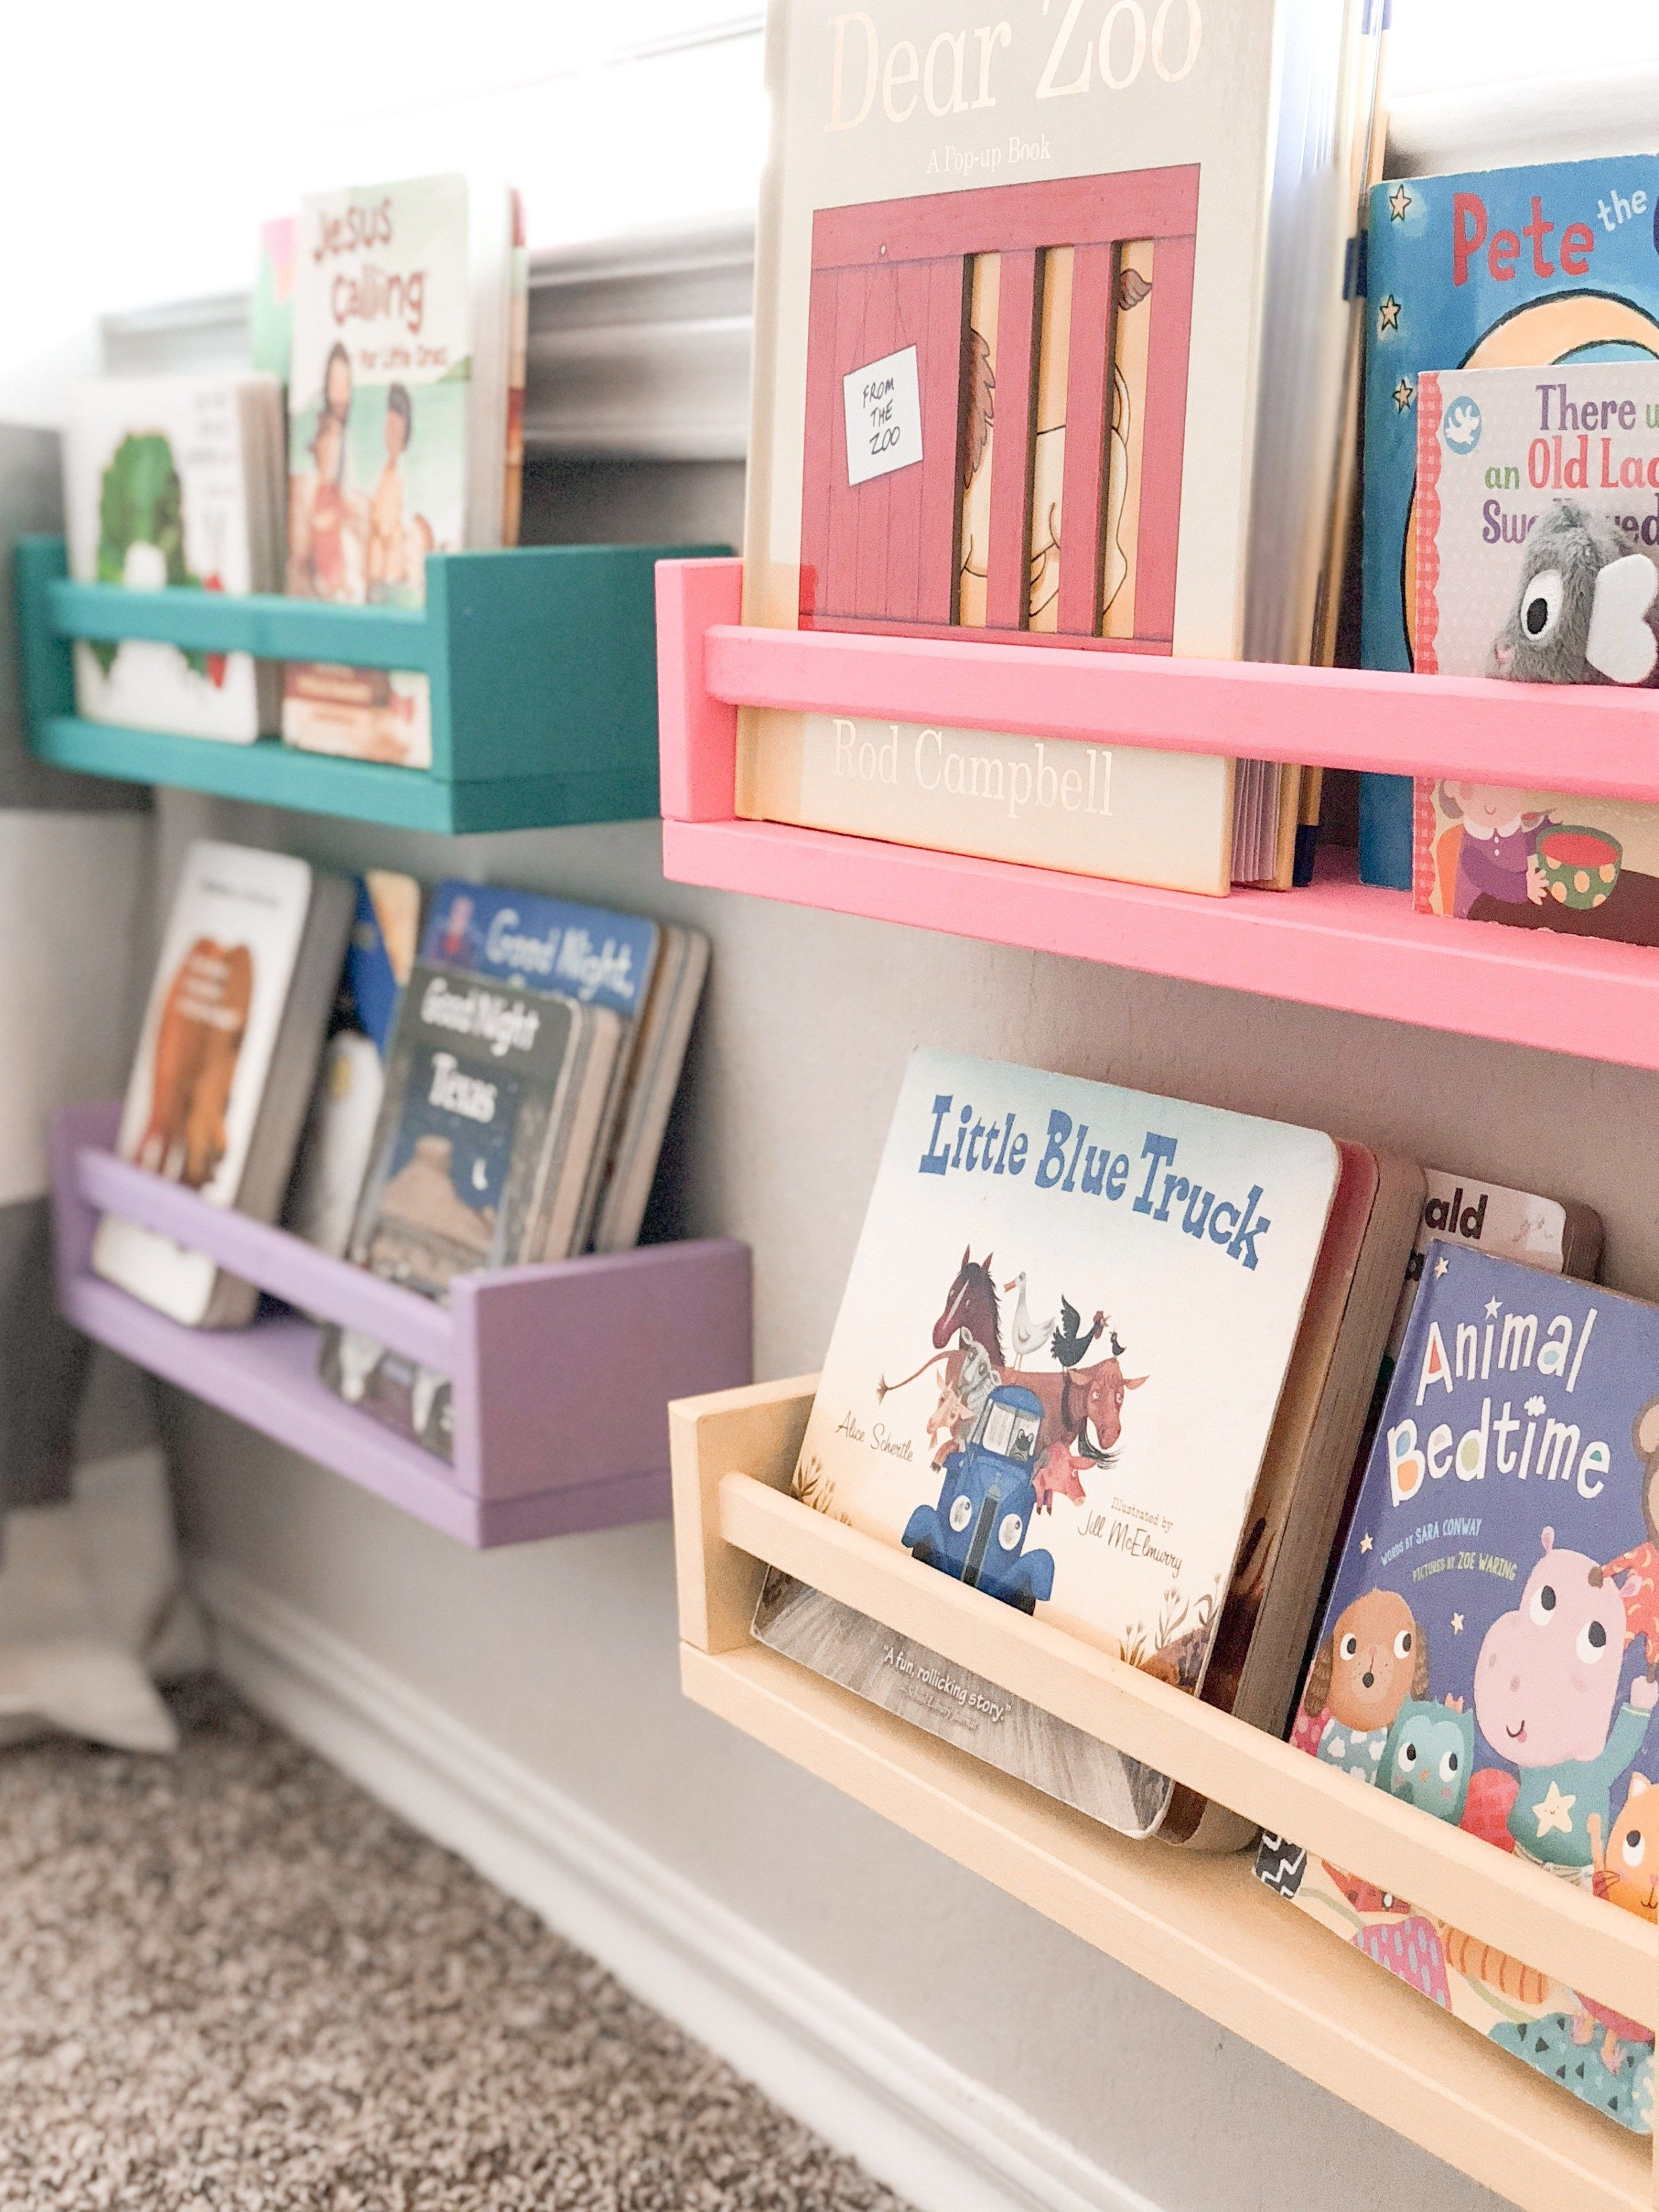 Home Tour: Our Playroom on a Budget - Her Happy Home